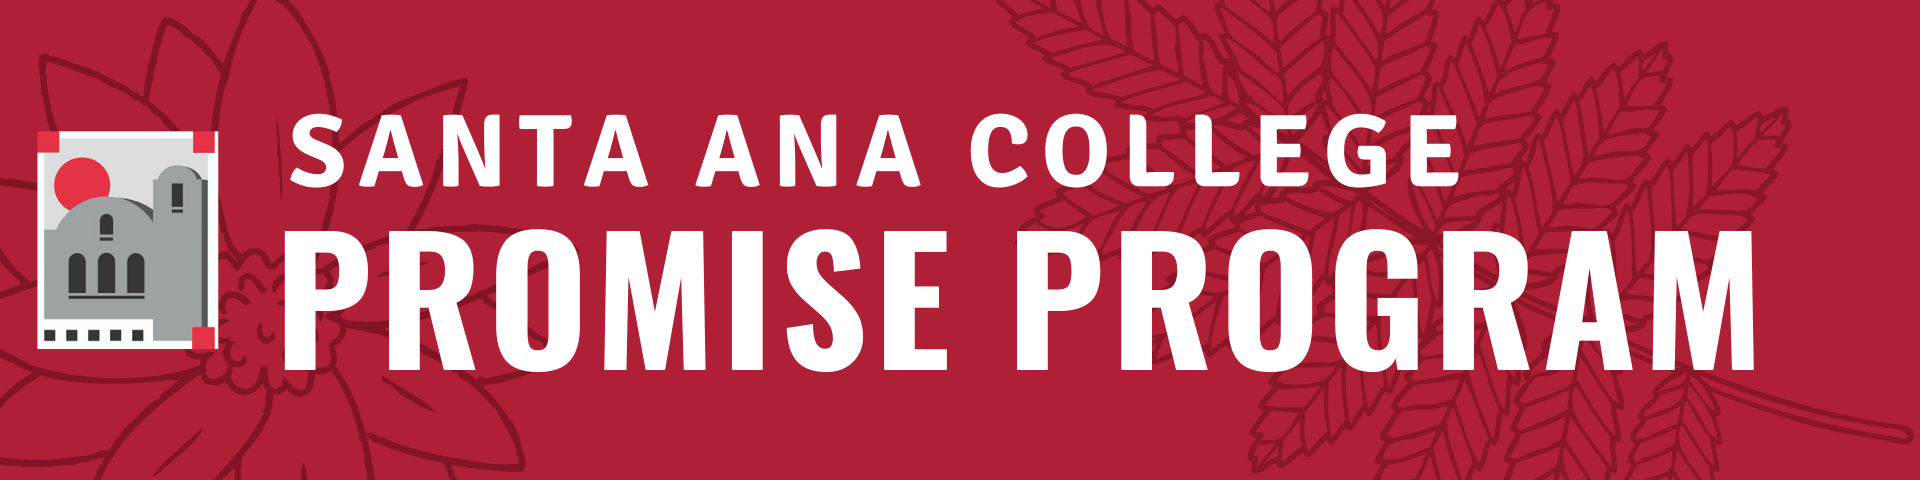 Santa ana college promise program